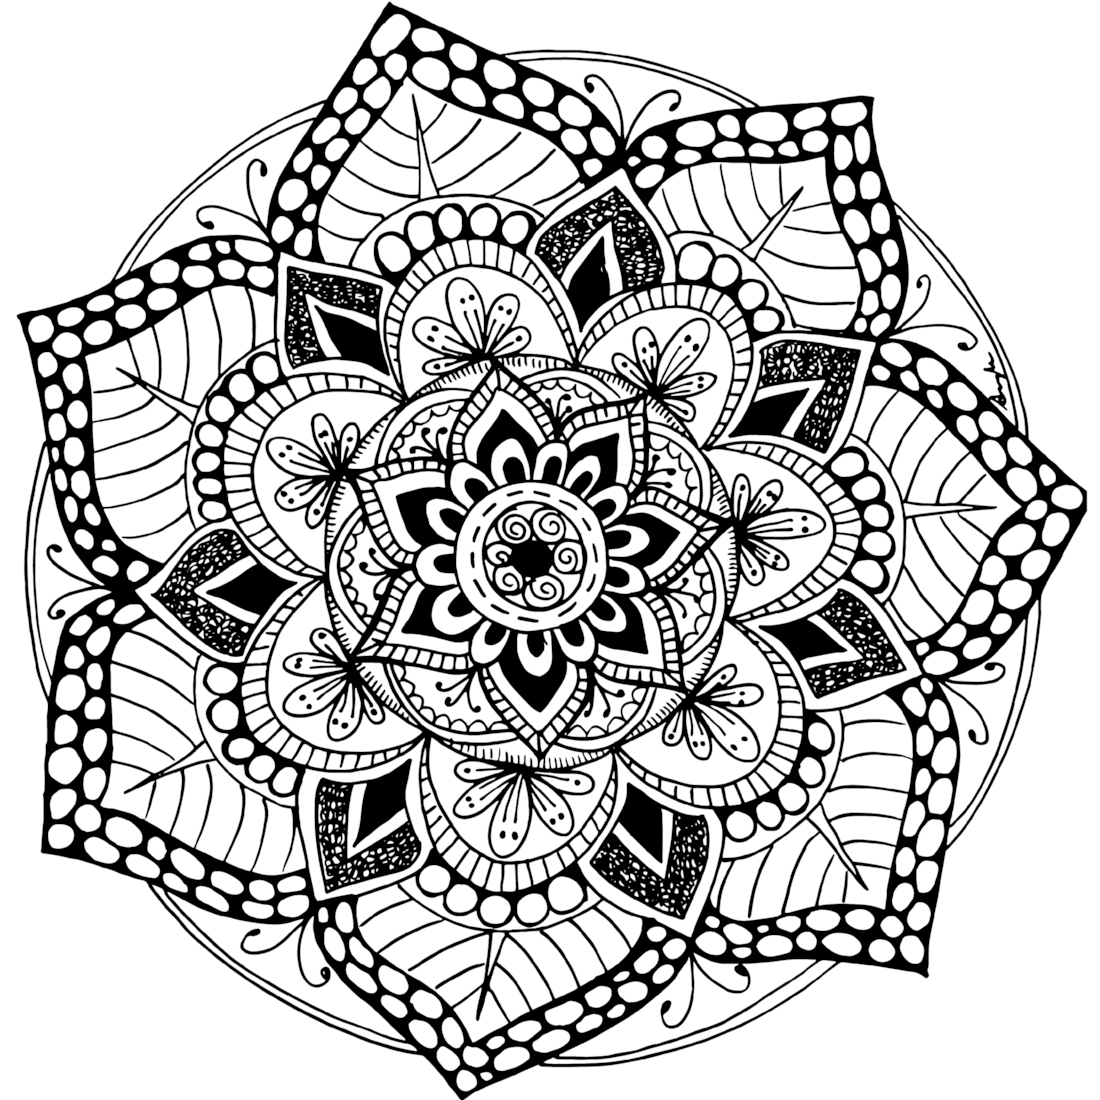 Picture of Well 18 coloring page